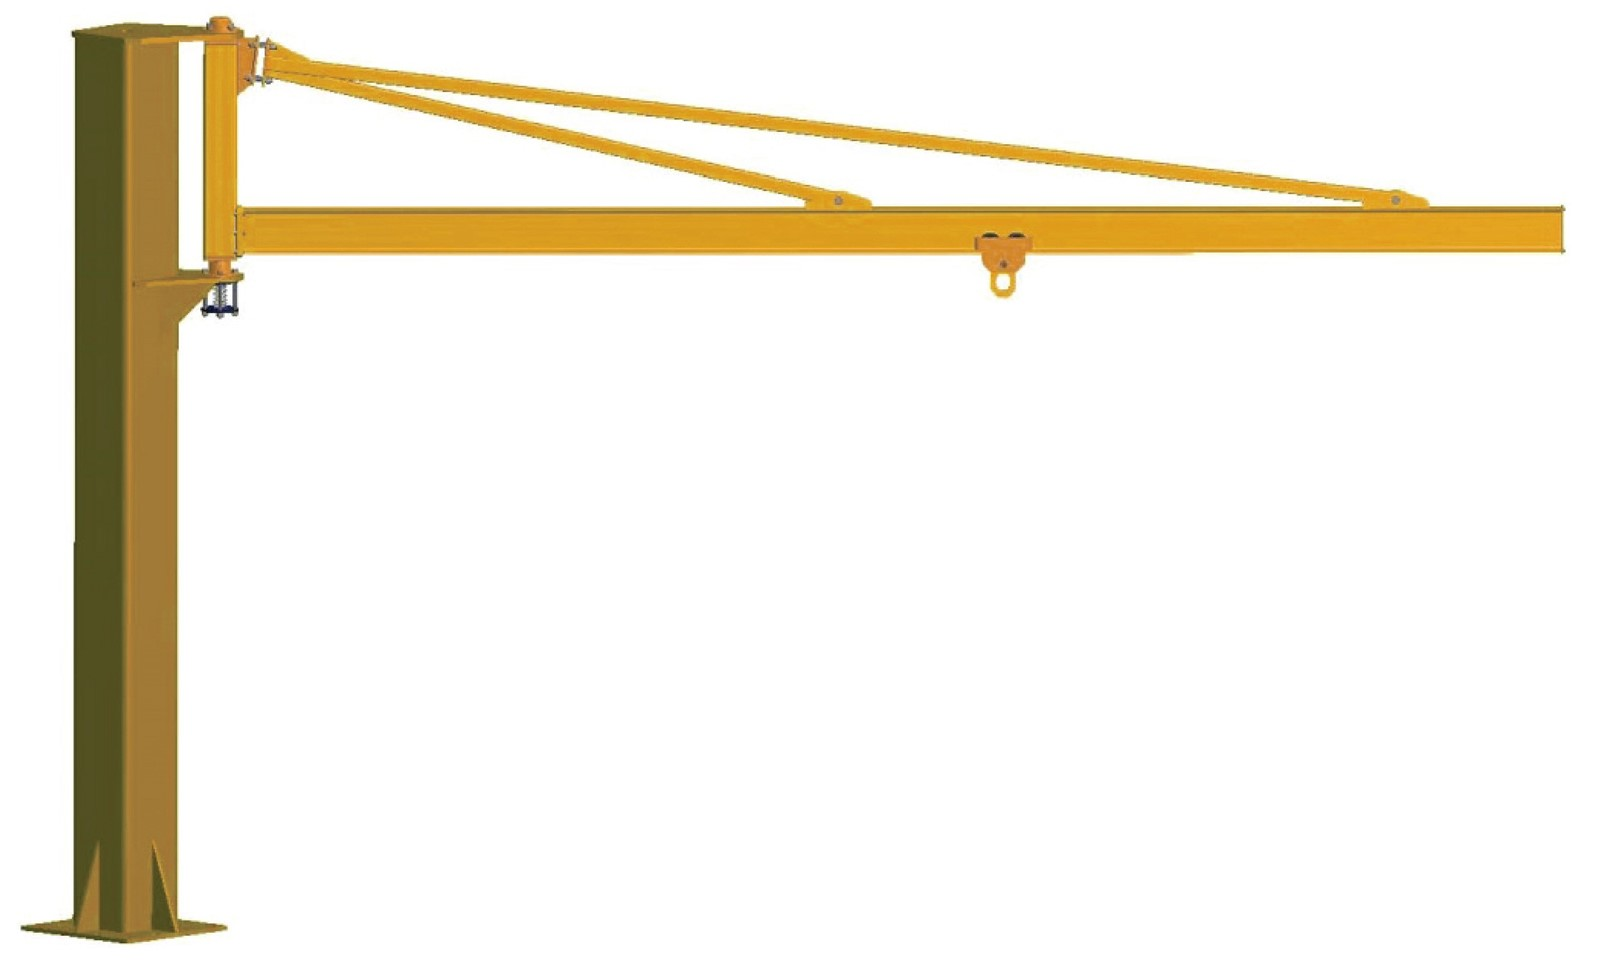 Articulated Arm Lifting Devices : Aardwolf colimn articulated crane purchasing souring